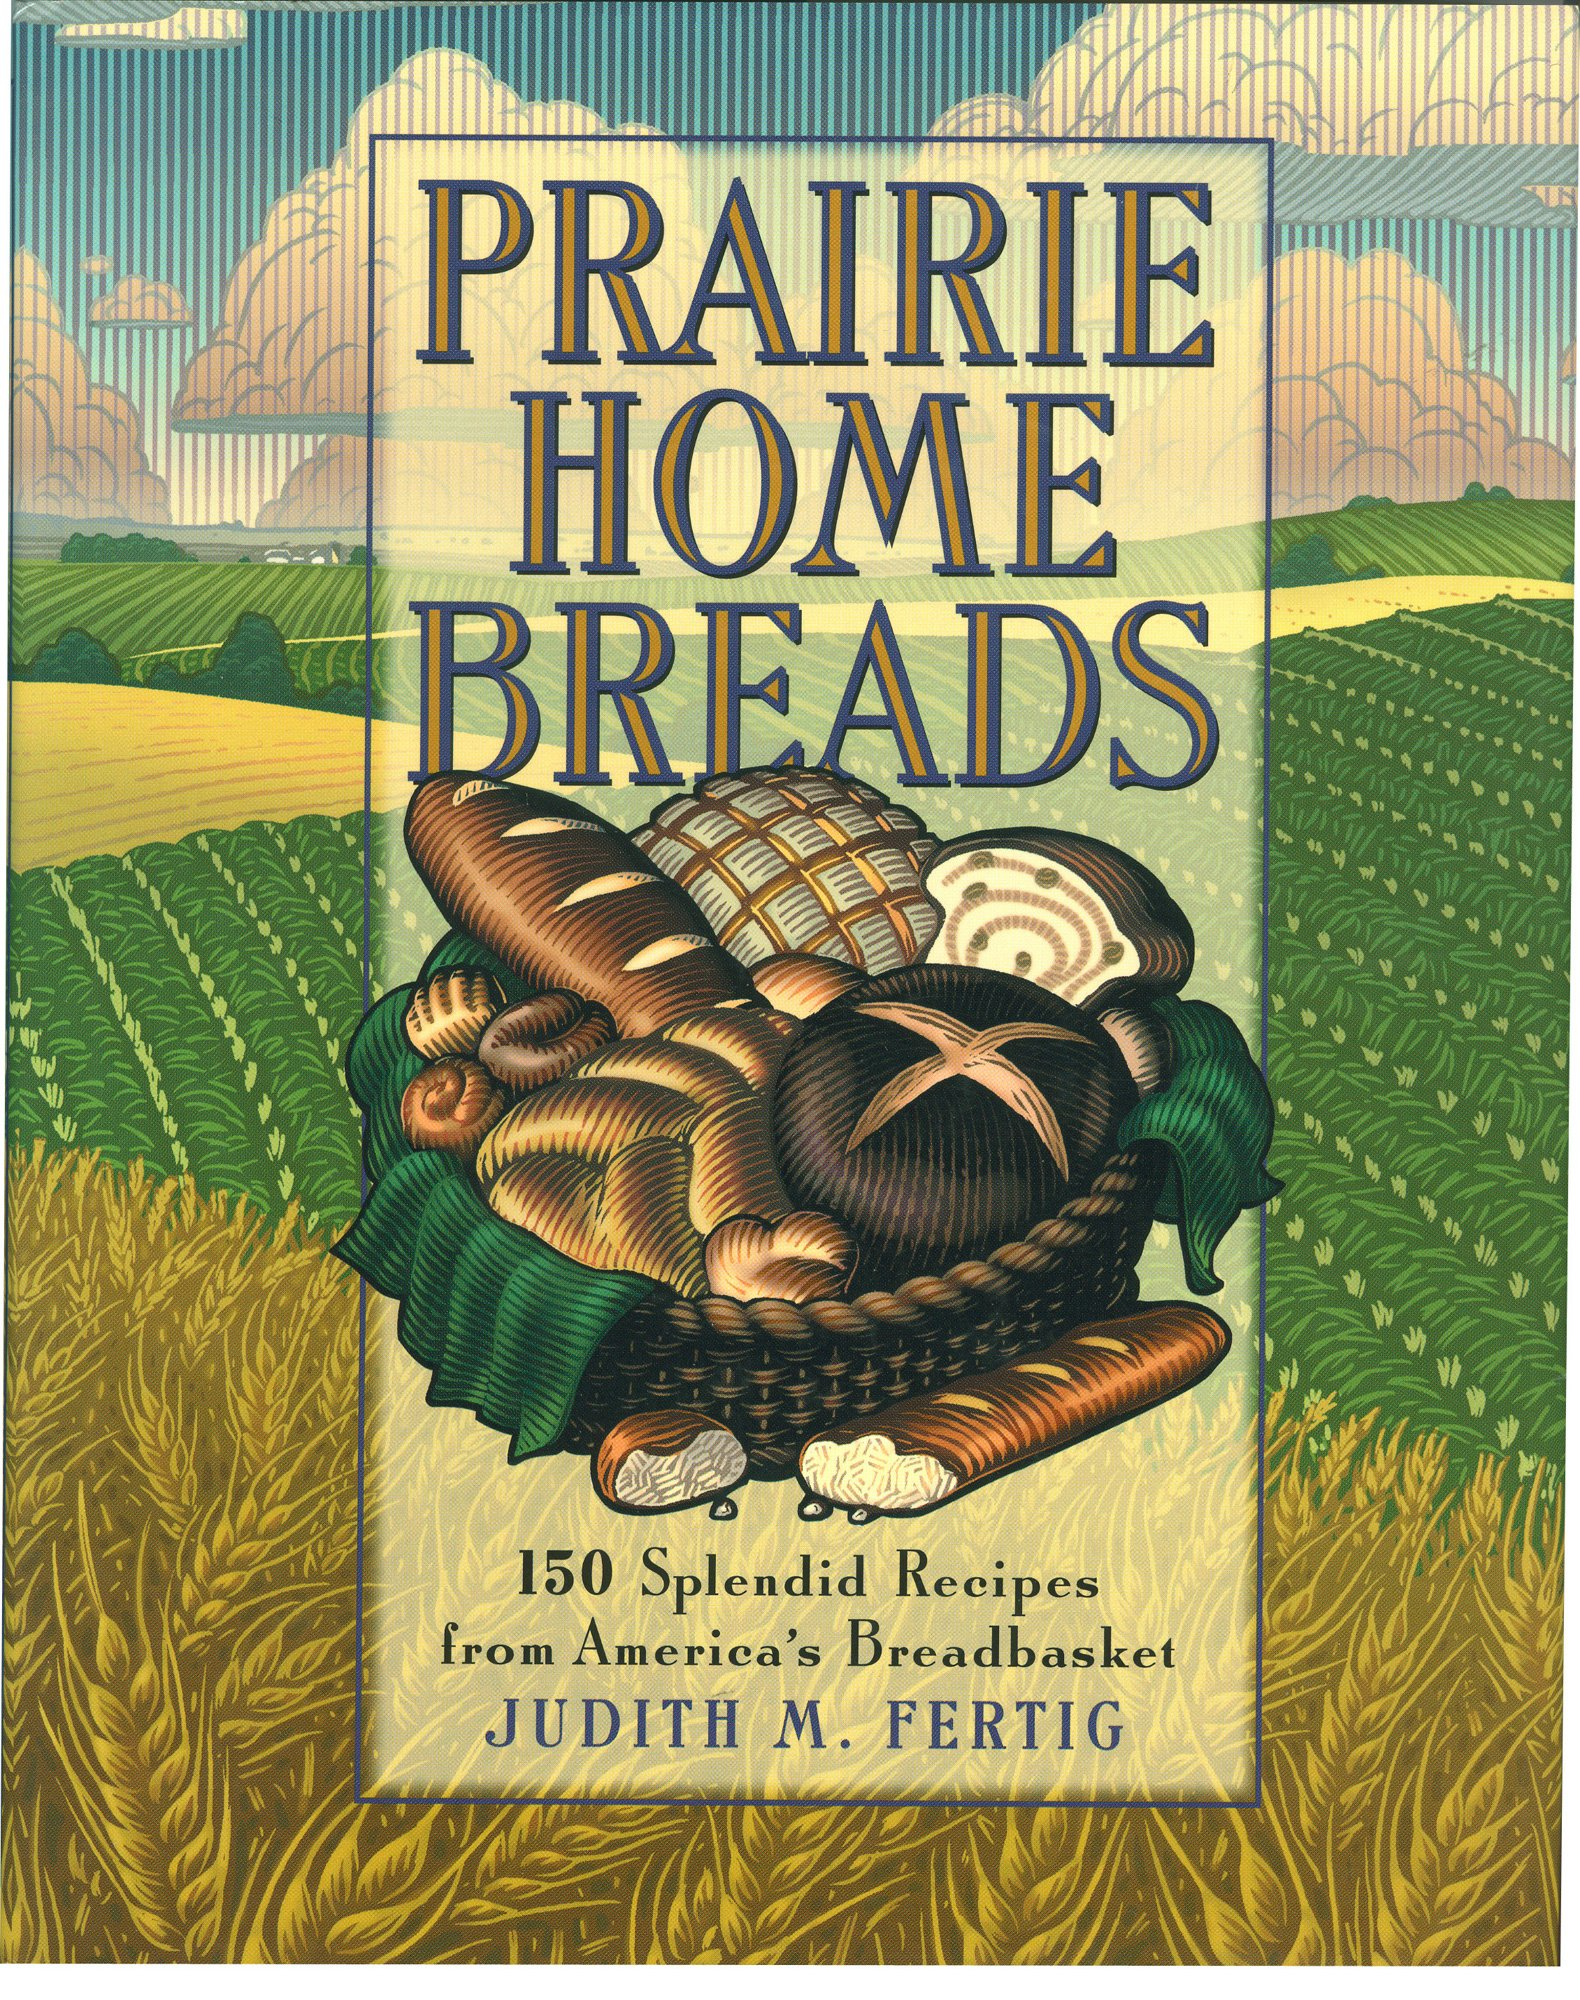 Download Prairie Home Breads: 150 Splendid Recipes from America's Breadbasket (Non) pdf epub